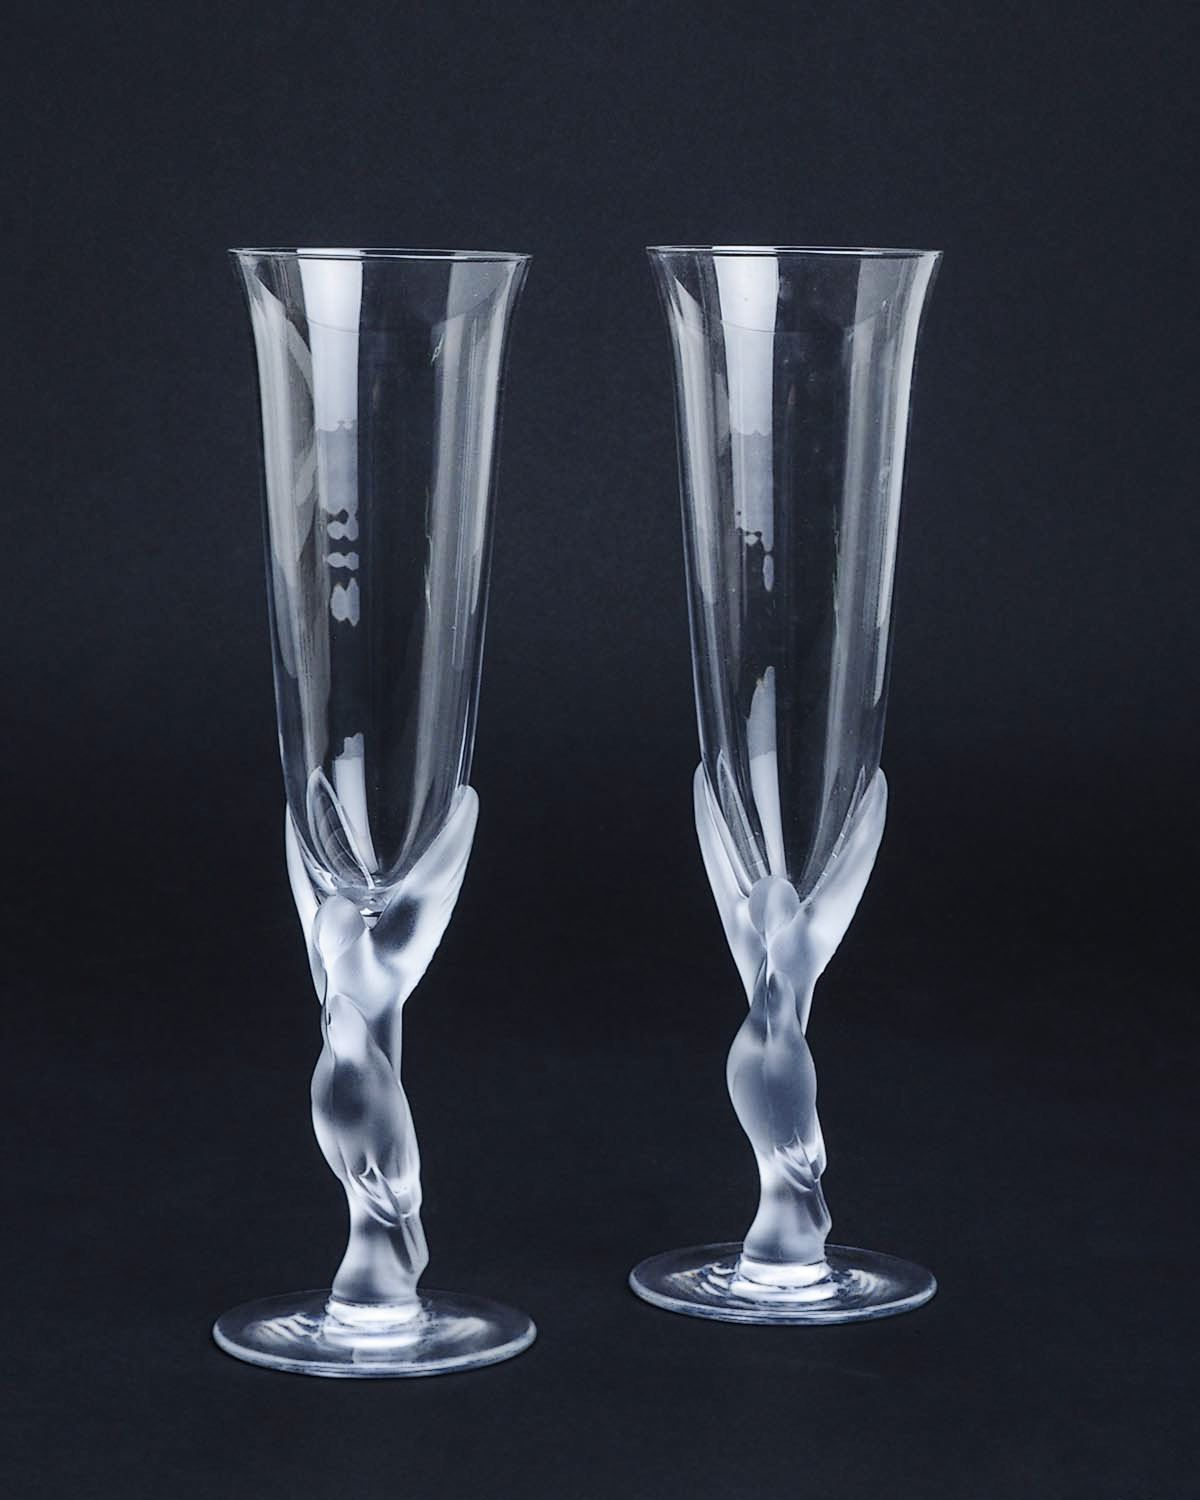 7acb52c0d8e Product Name Faberge LUIB  The Snow Dove  Crystal Champagne Glasses ...